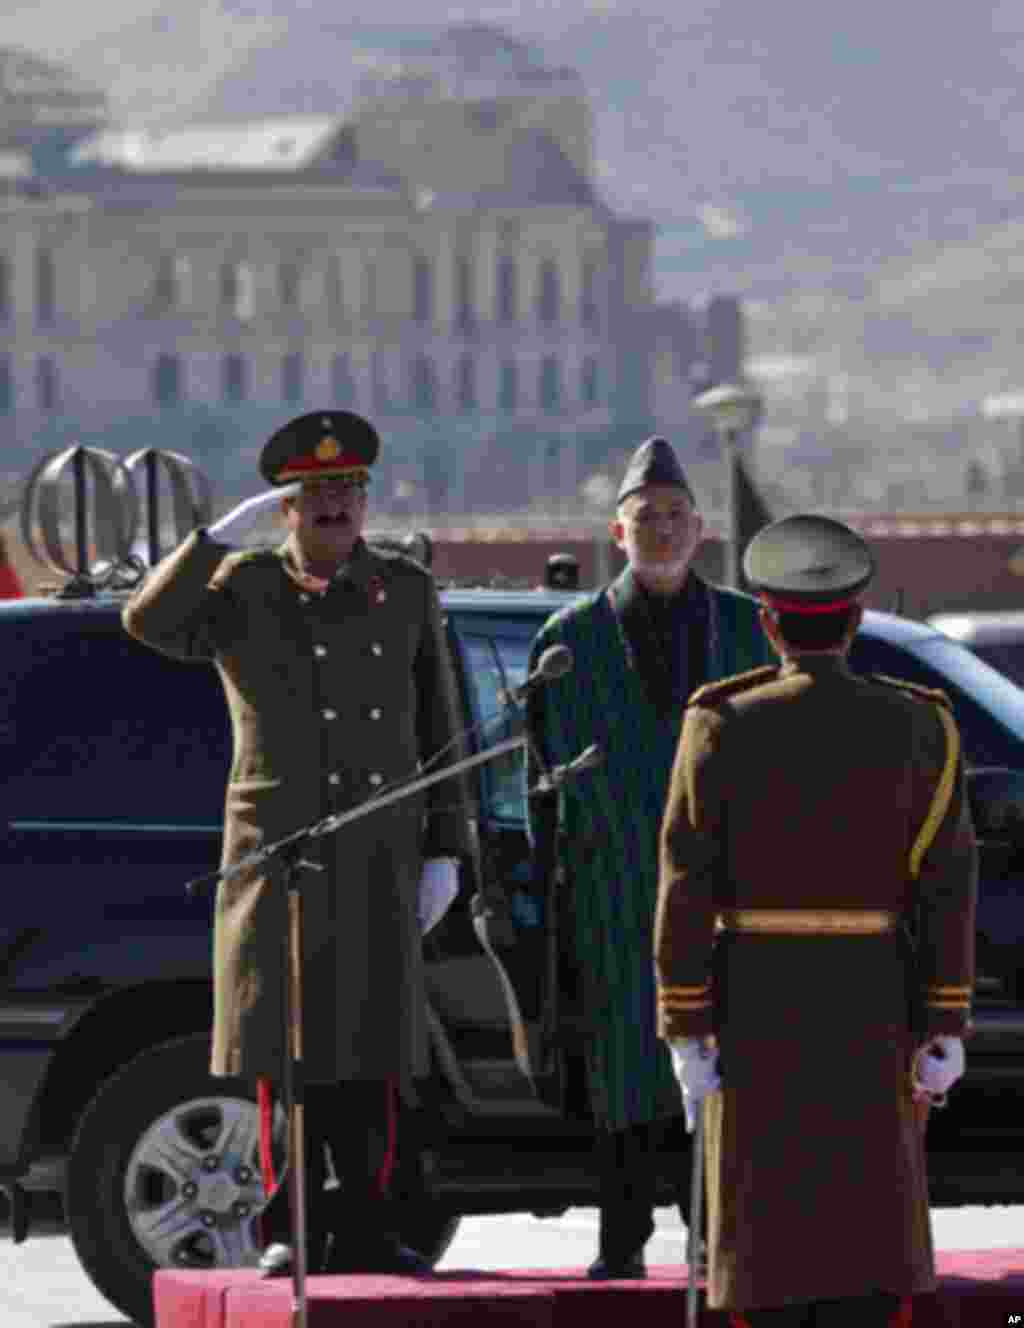 Afghan President Hamid Karzai inspects honor guards before he inaugurated Afghanistan's parliament in Kabul January 26, 2011. Afghan President Hamid Karzai opened parliament on Wednesday, ending a standoff with lawmakers, but setting the stage for a longe